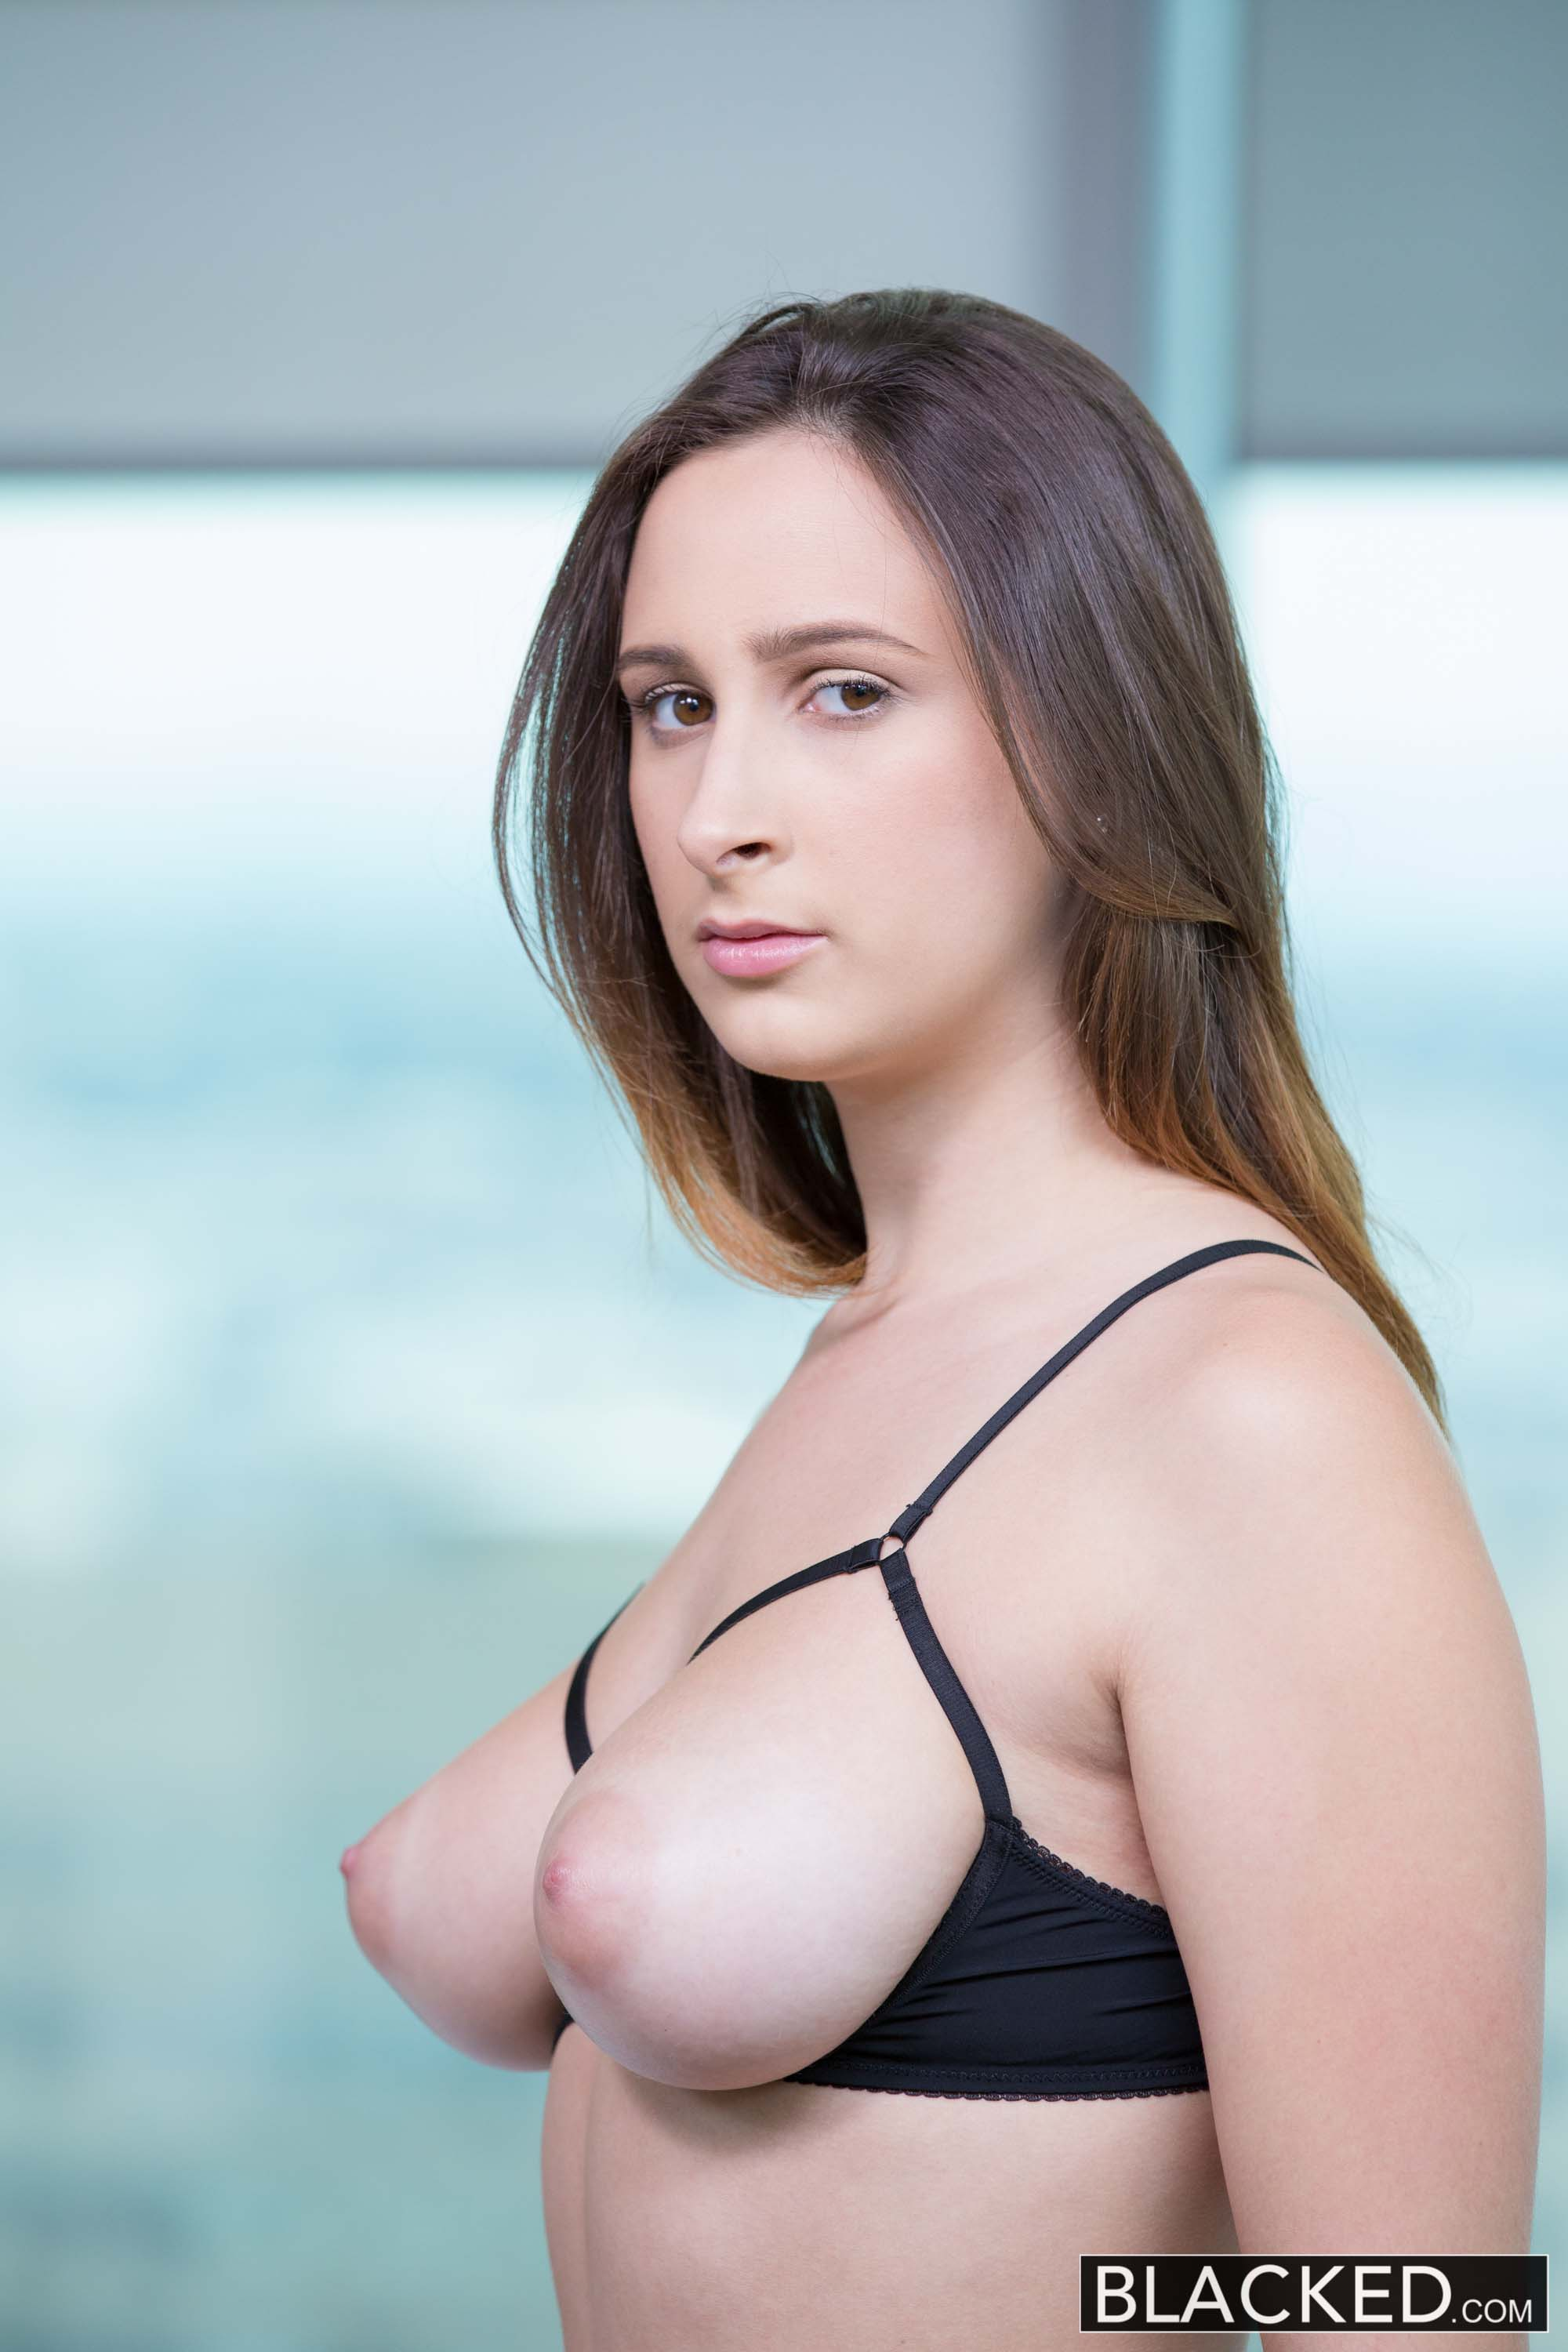 Ashley adams knows how to ride 7